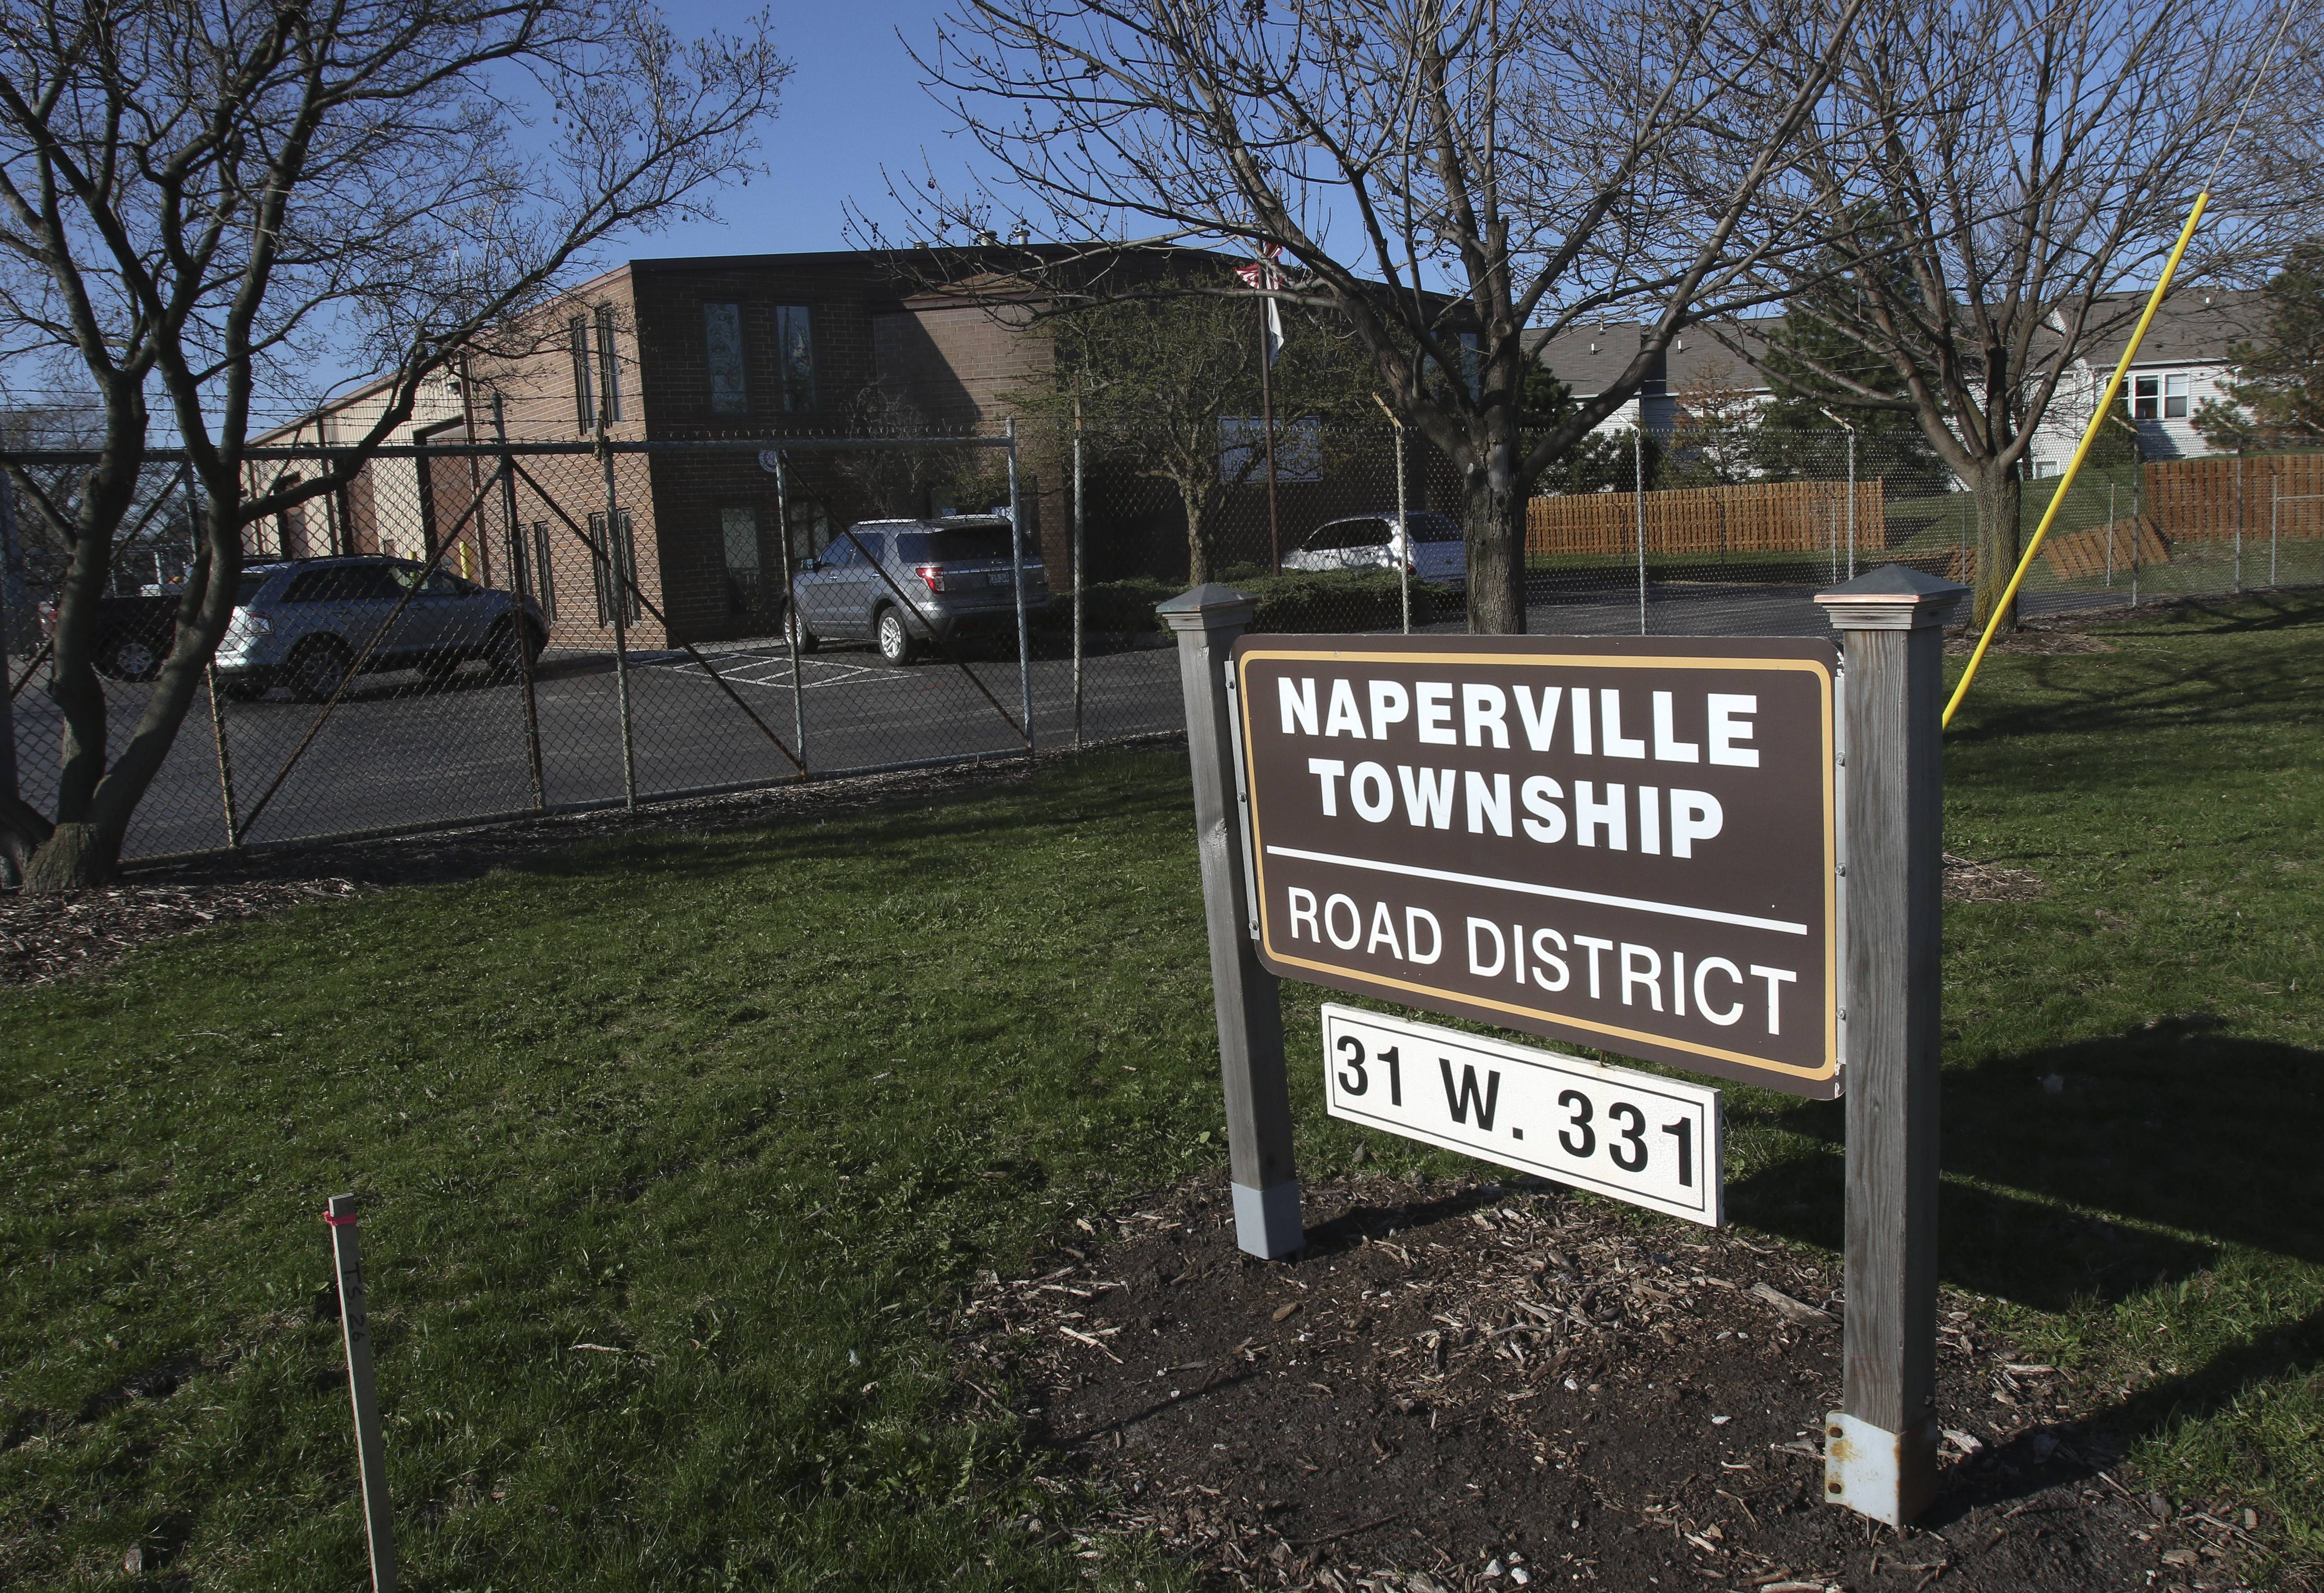 The future of the Naperville Township Road District again will be in voters' hands April 2, as the township is moving forward with a binding referendum asking whether to dissolve the district and have its responsibilities assumed by township government.